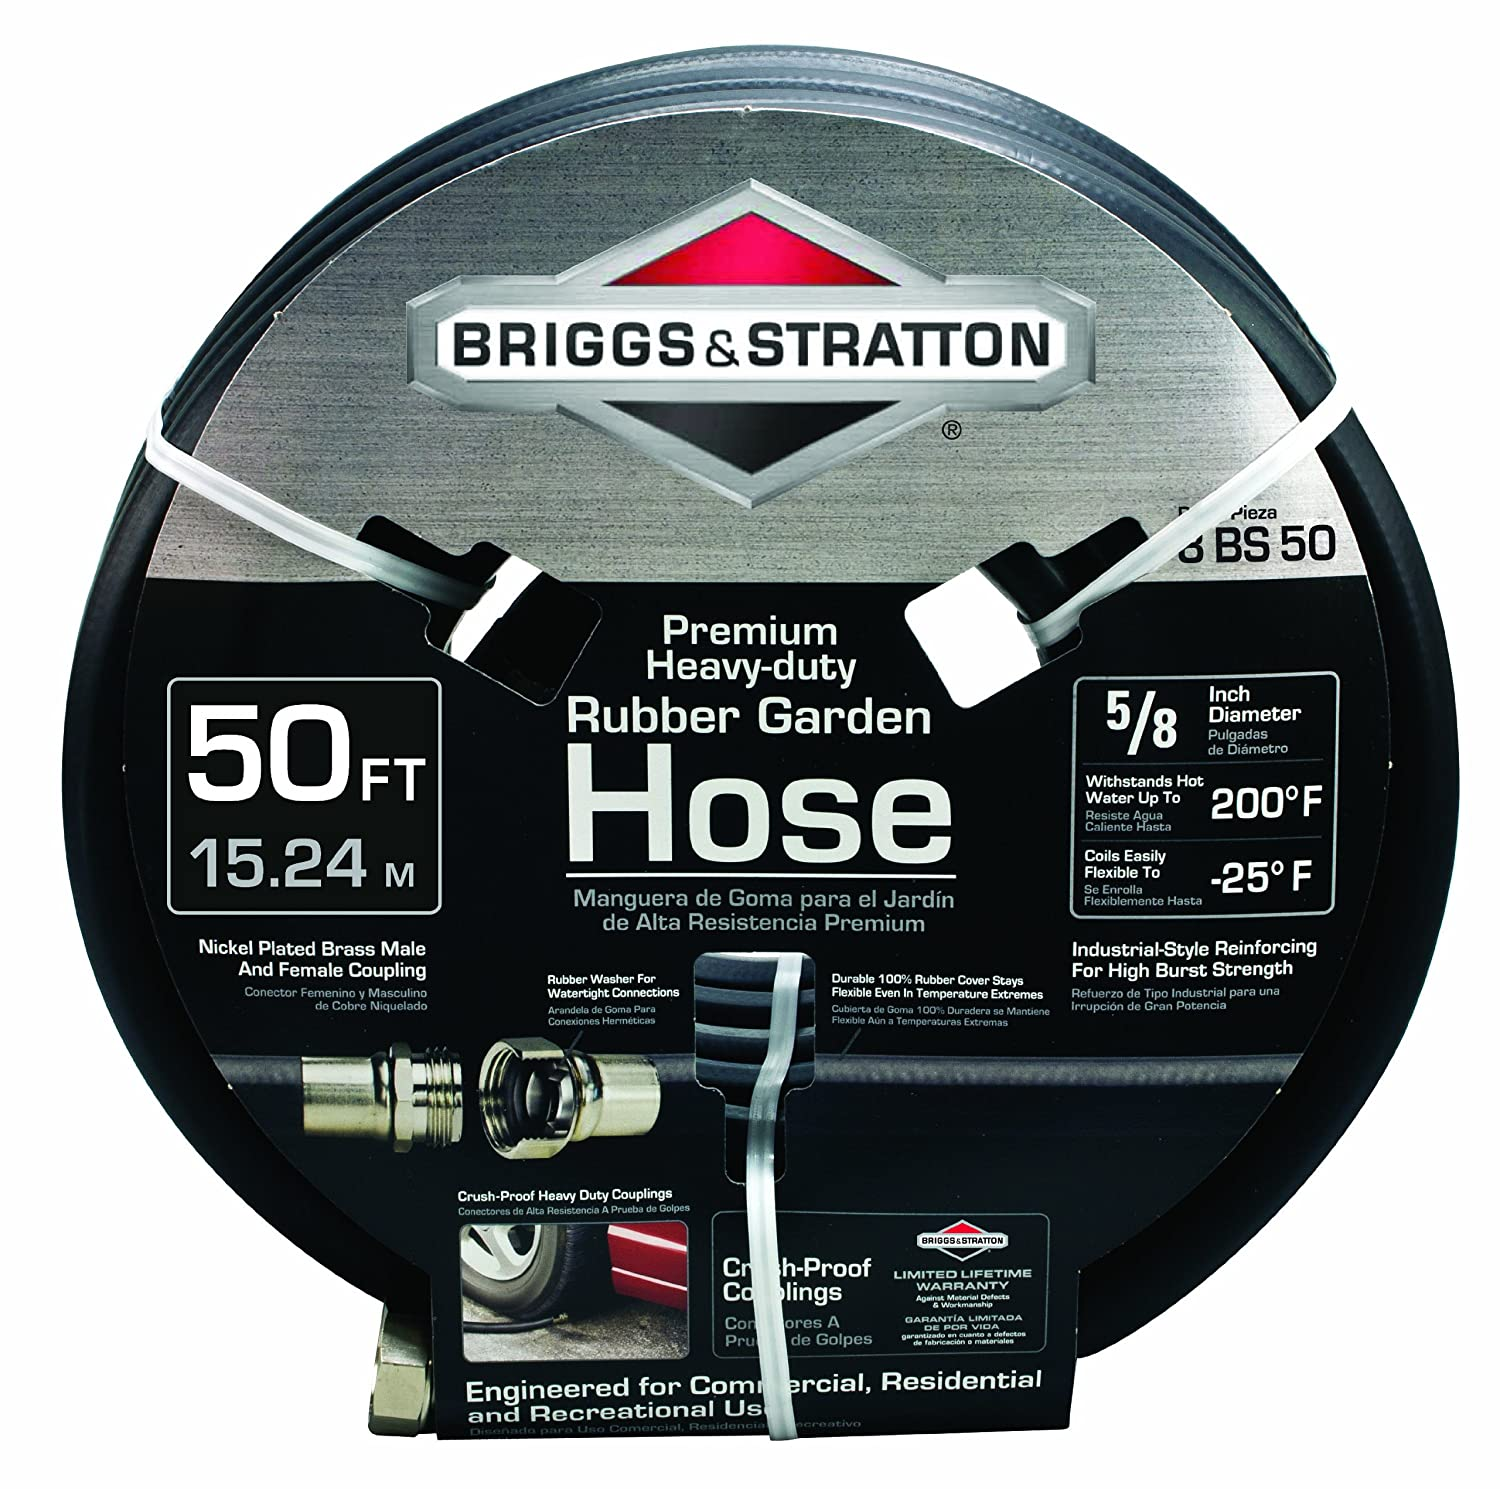 Briggs and Stratton 8BS50 50-Foot Premium Heavy-Duty Rubber Garden Hose